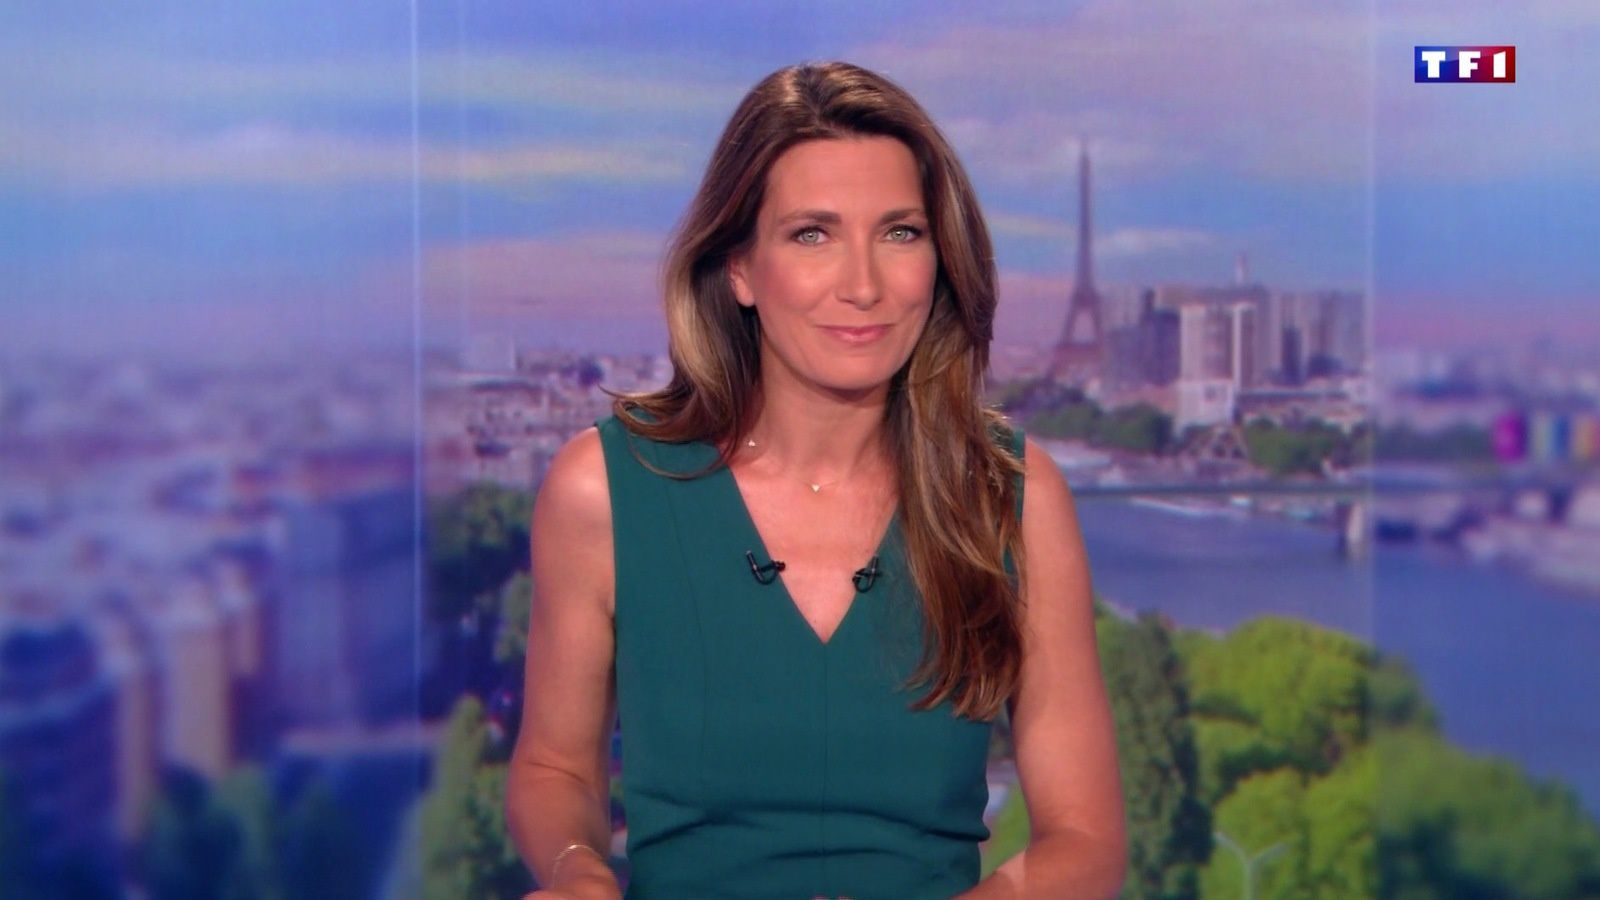 📸14 ANNE-CLAIRE COUDRAY @ACCoudray @TF1 @TF1LeJT pour LE 20H WEEK-END #vuesalatele